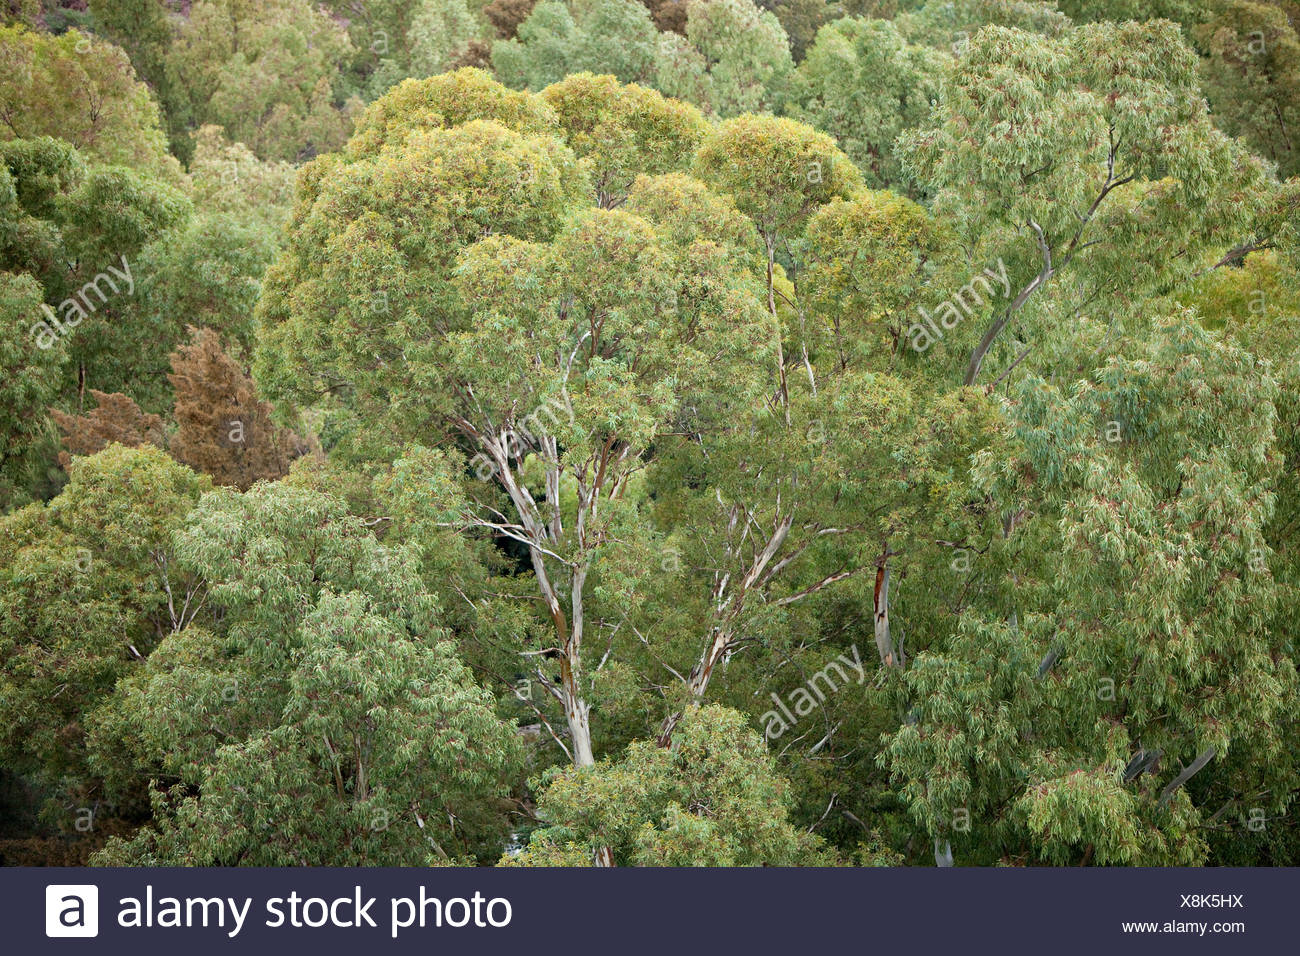 Aerial view of forest - Stock Image